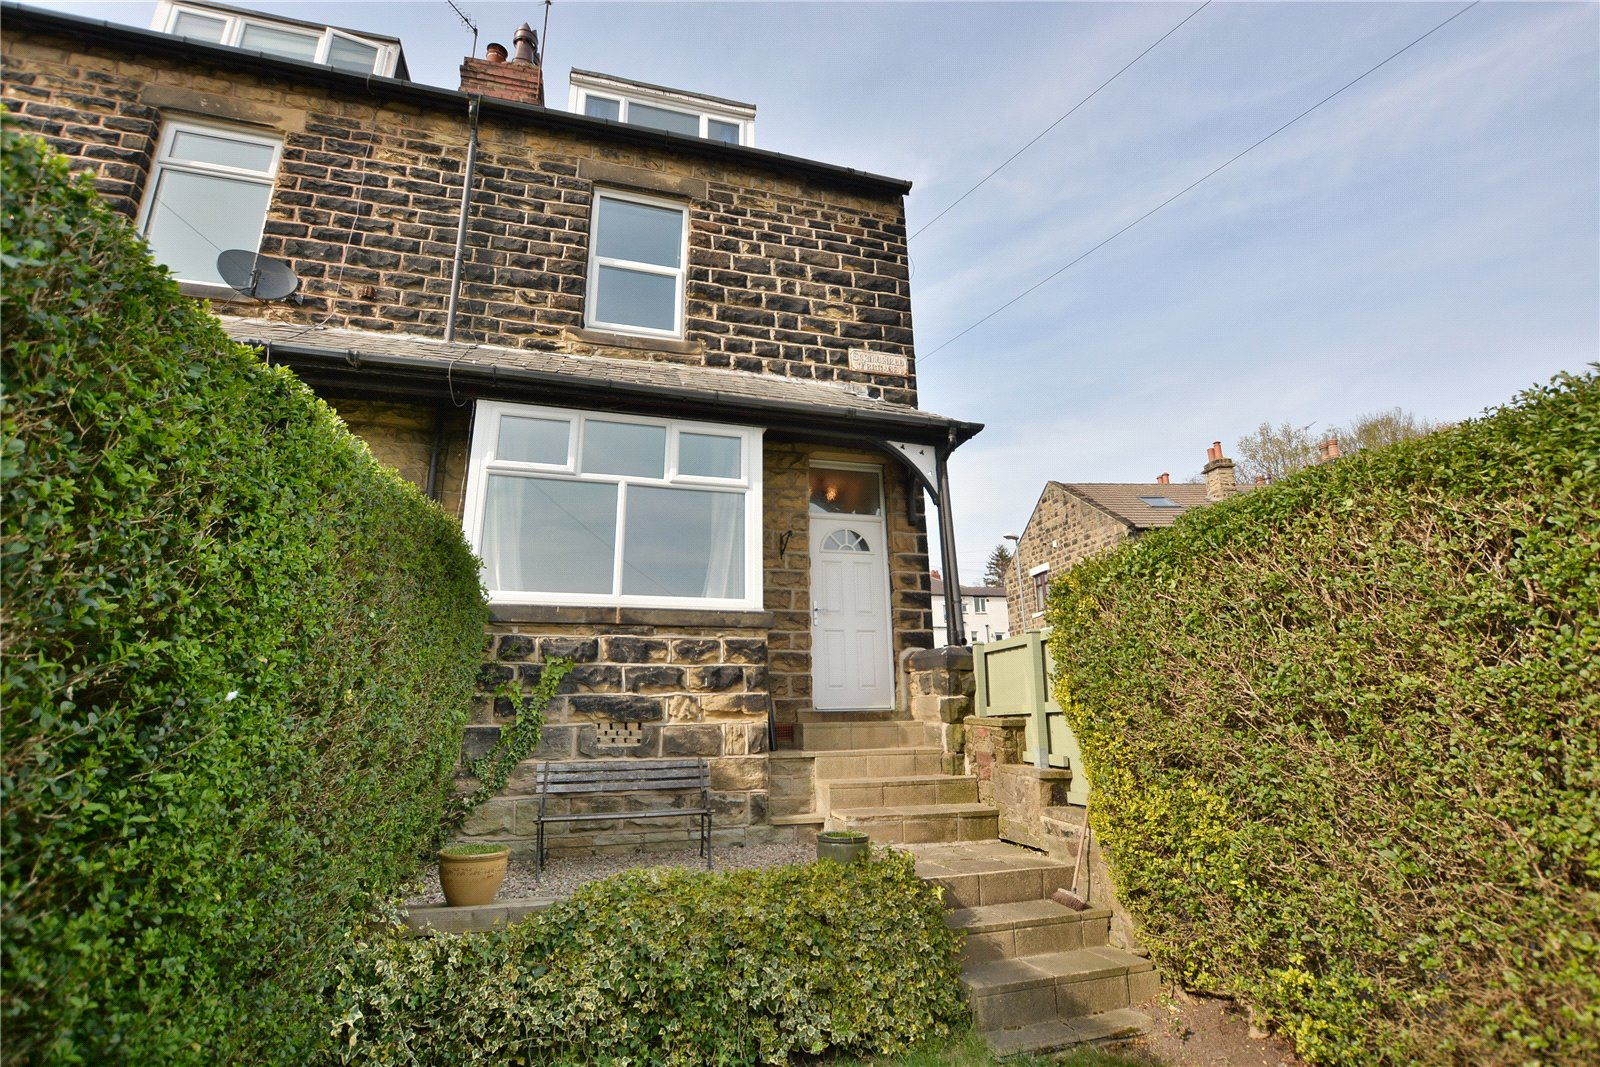 Yorkshire Terrace: 4 Bed Terraced House For Sale In Springfield Terrace